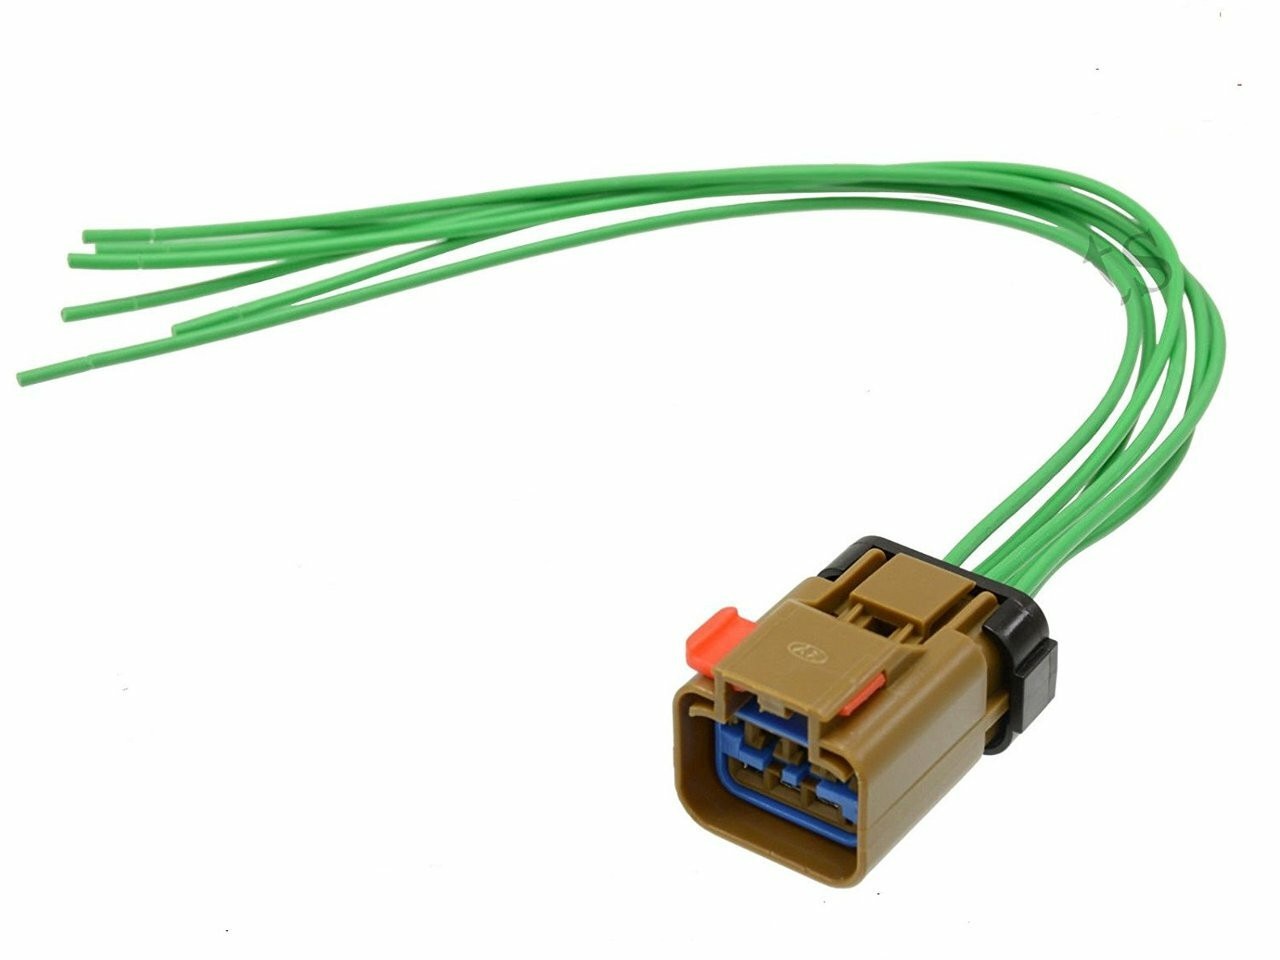 wiring harness pigtail connector kit repairs or replaces power Pontiac G6 Tail Light Wiring Harness wiring harness pigtail connector kit repairs or replaces power window motor, wiper motor, tail lamp circuit board fits chrysler dodge